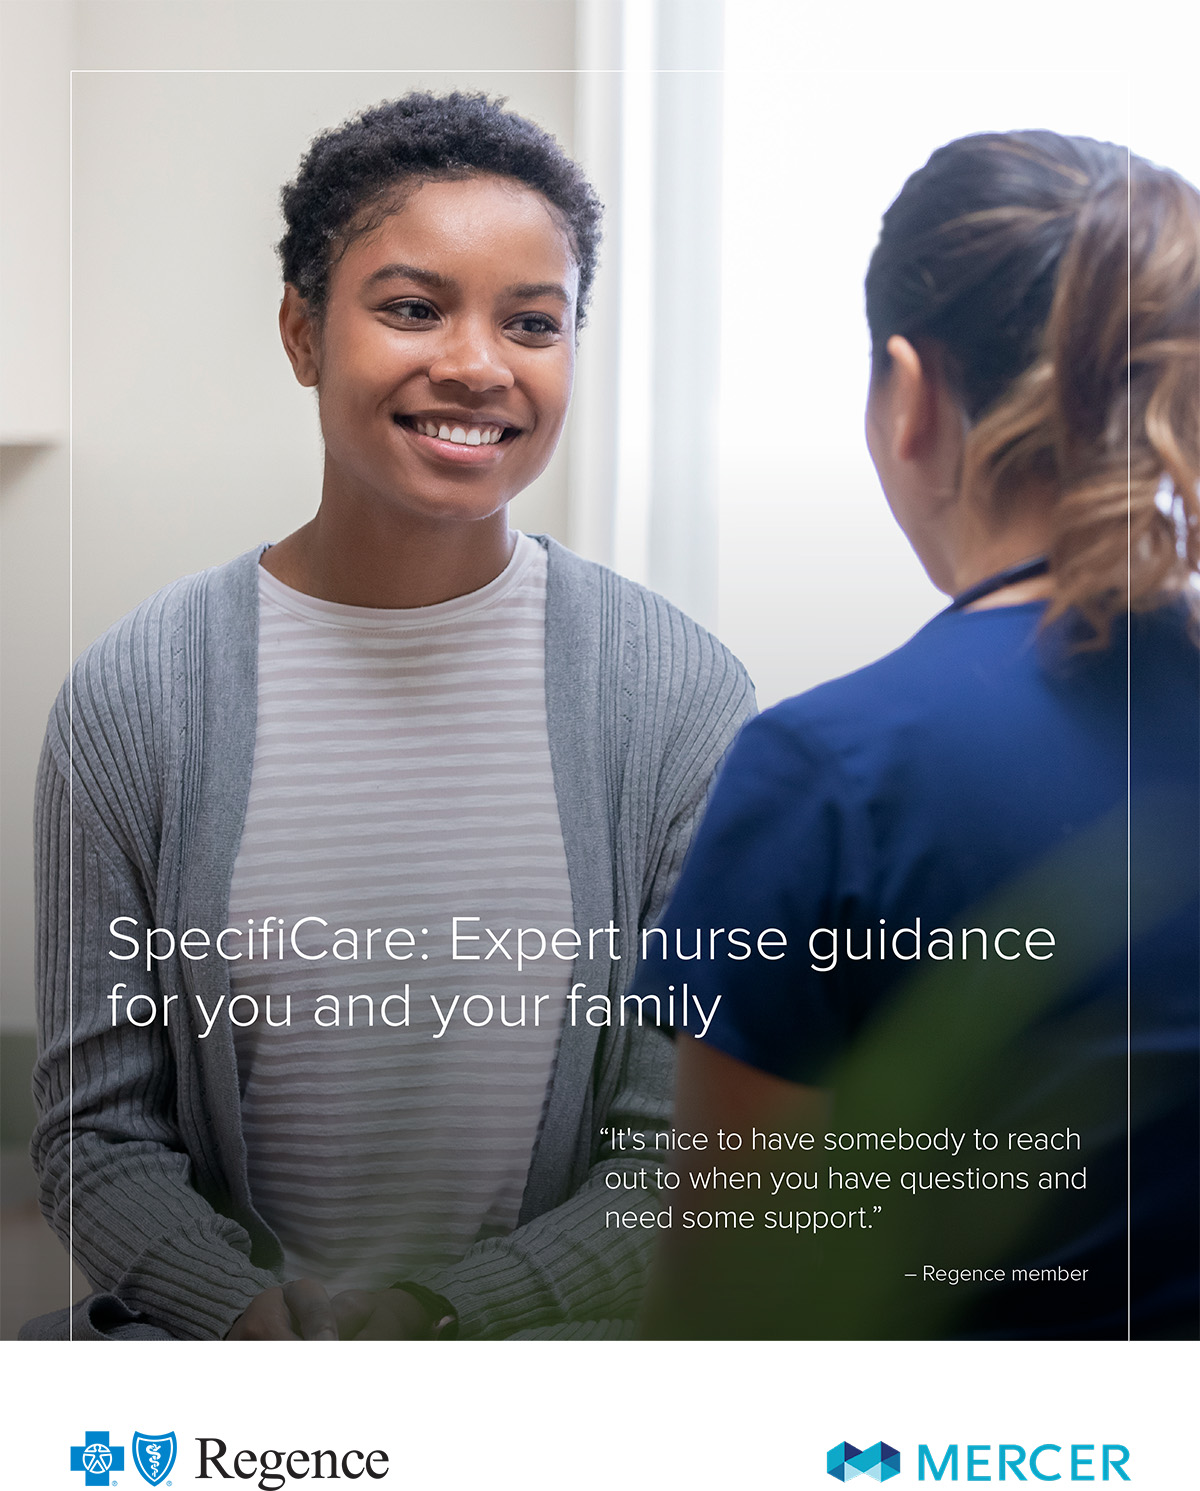 SpecifiCare: Expert nurse guidance for you and your family